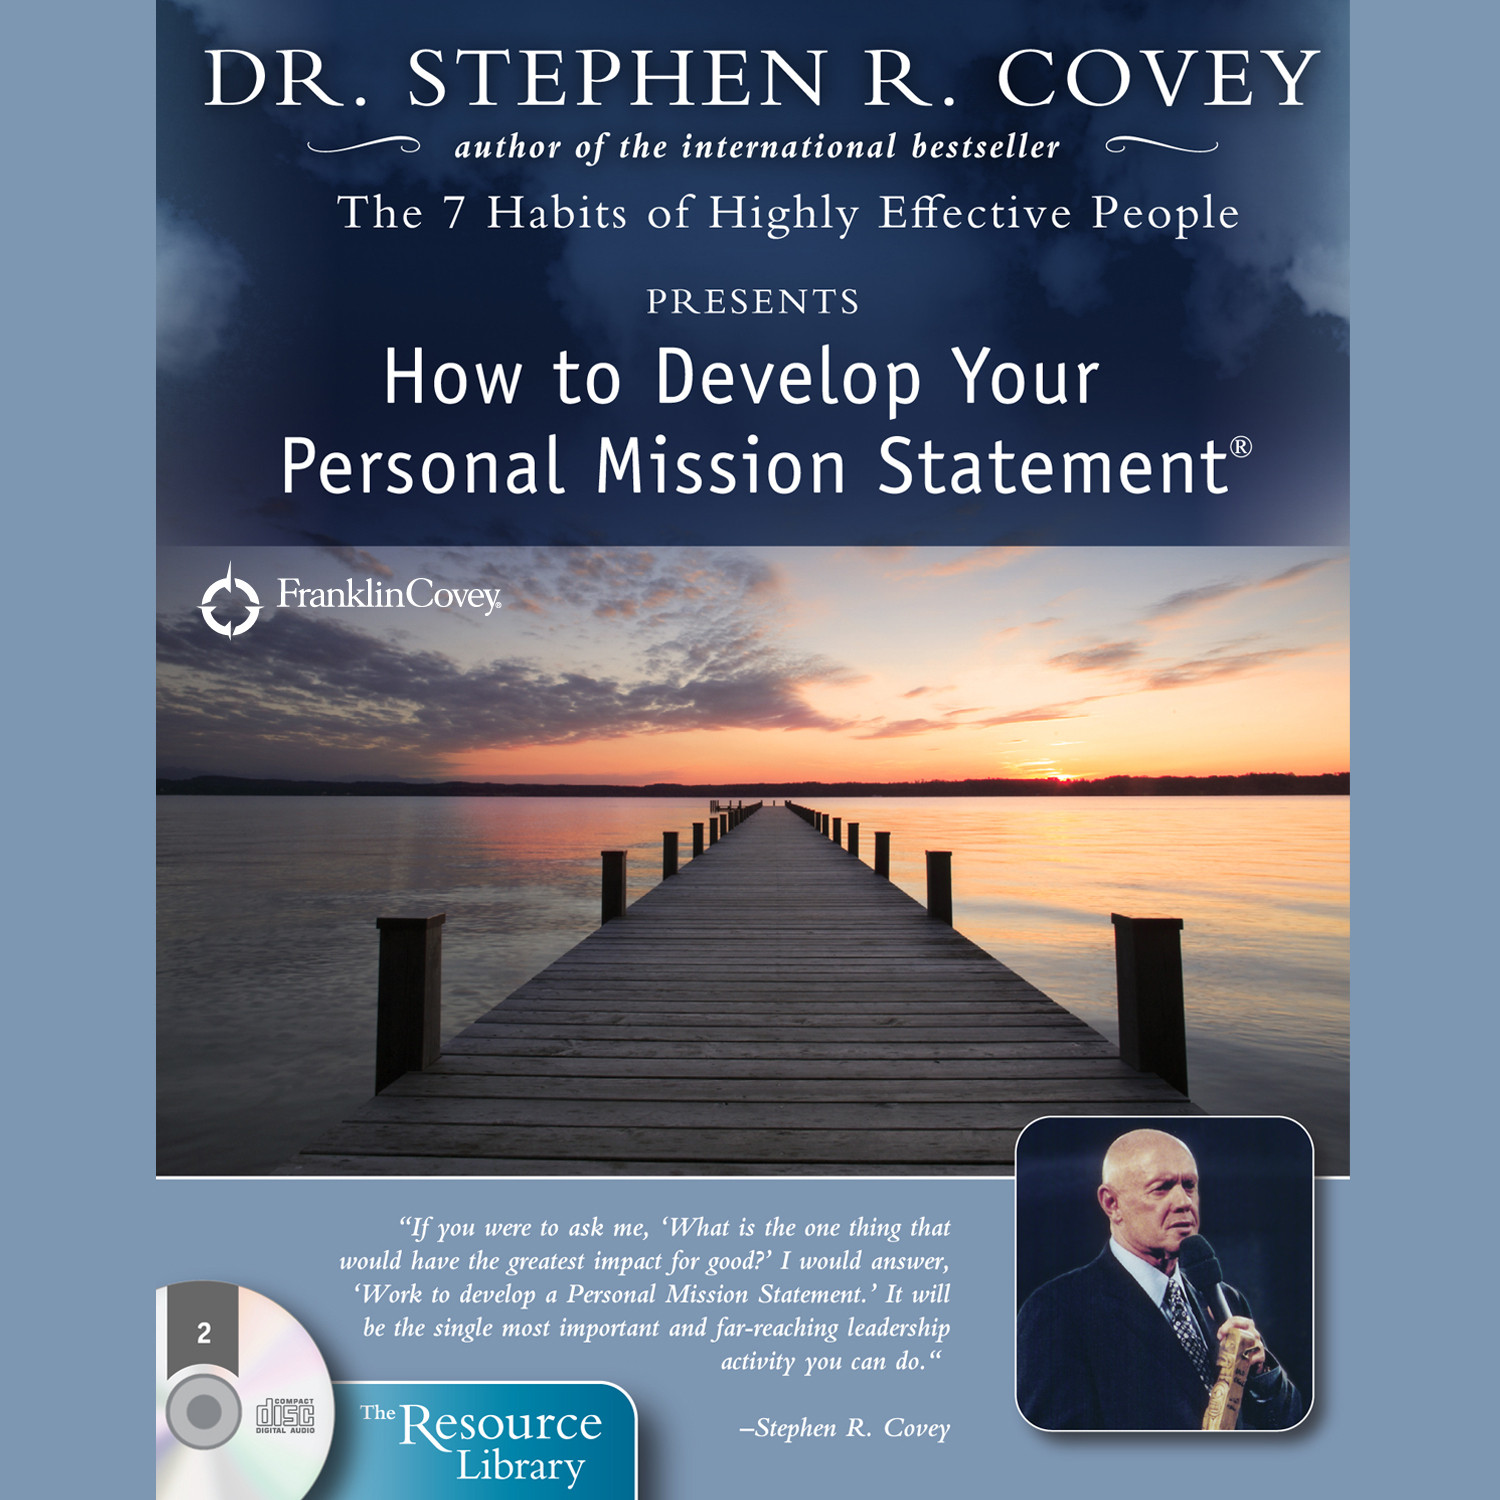 stephen covey personal mission statement builder Franklincovey mission statement builder - personal, family, team, your values stephen covey on-line mission statement builder (free) there are versions for indivuals, families, team, and values exploration.